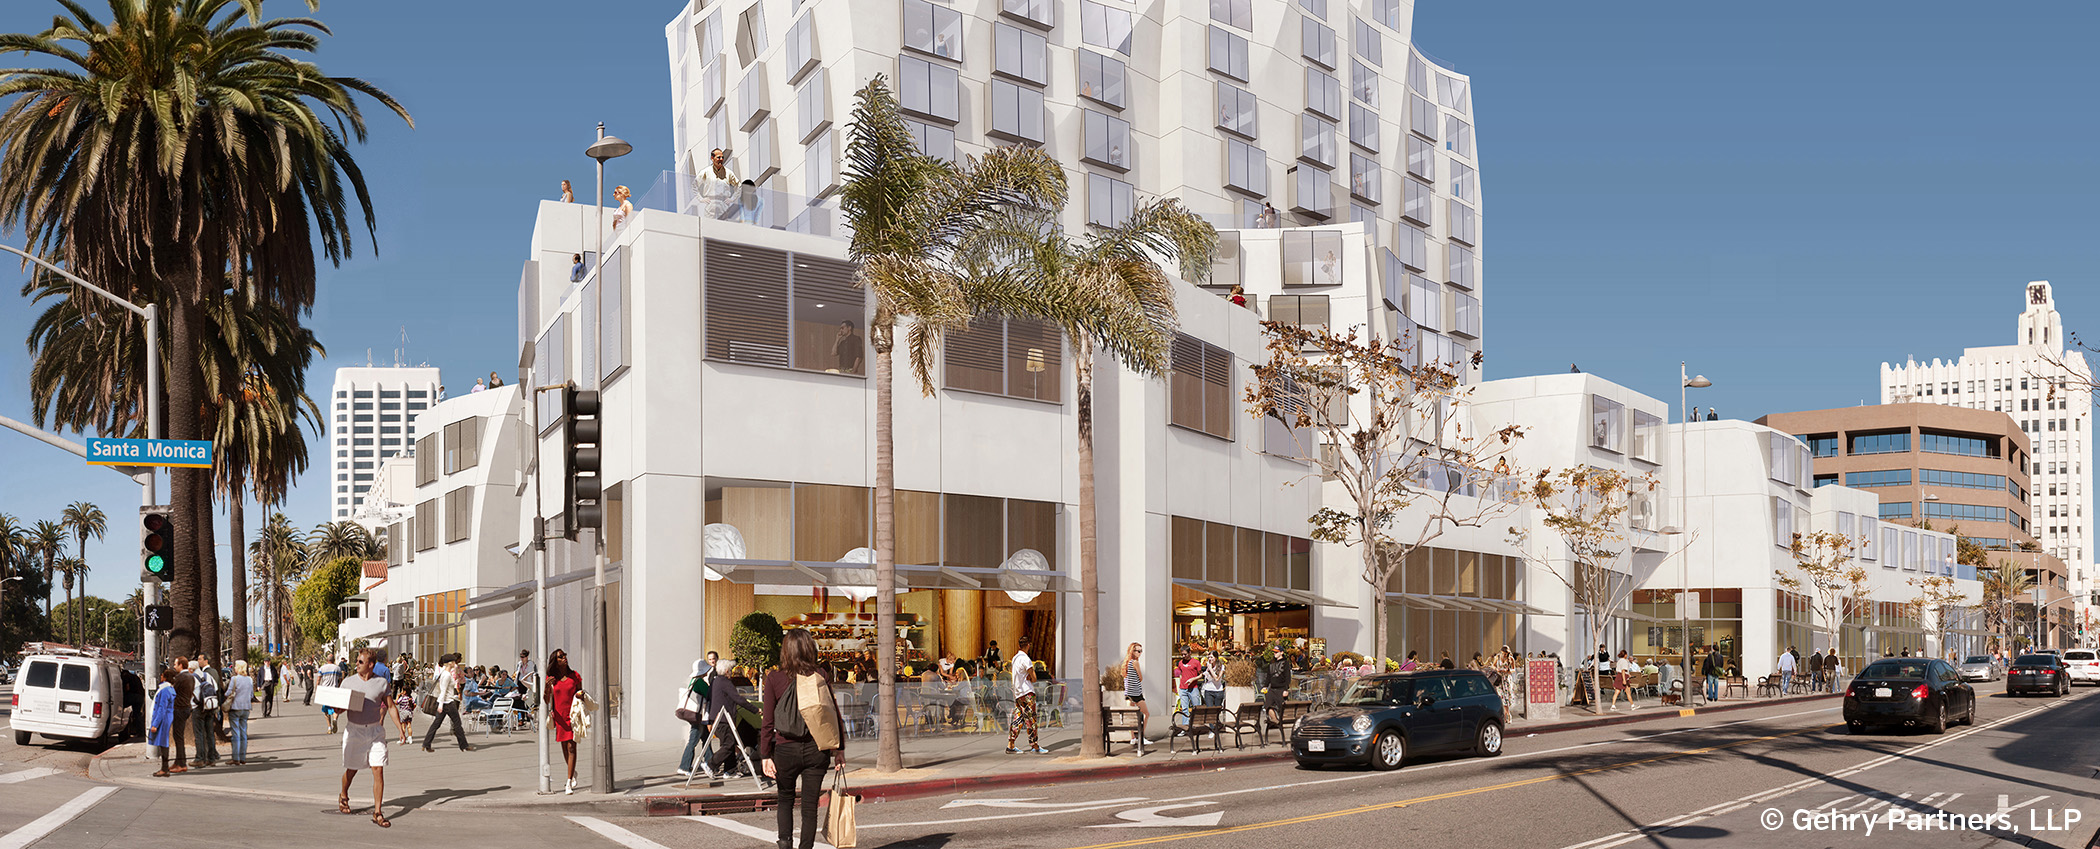 A rendering of the proposed hotel and condominium project designed by famed architect Frank Gehry for the corner of Ocean Avenue and Santa Monica Boulevard.  (Gehry Partners, LLC)